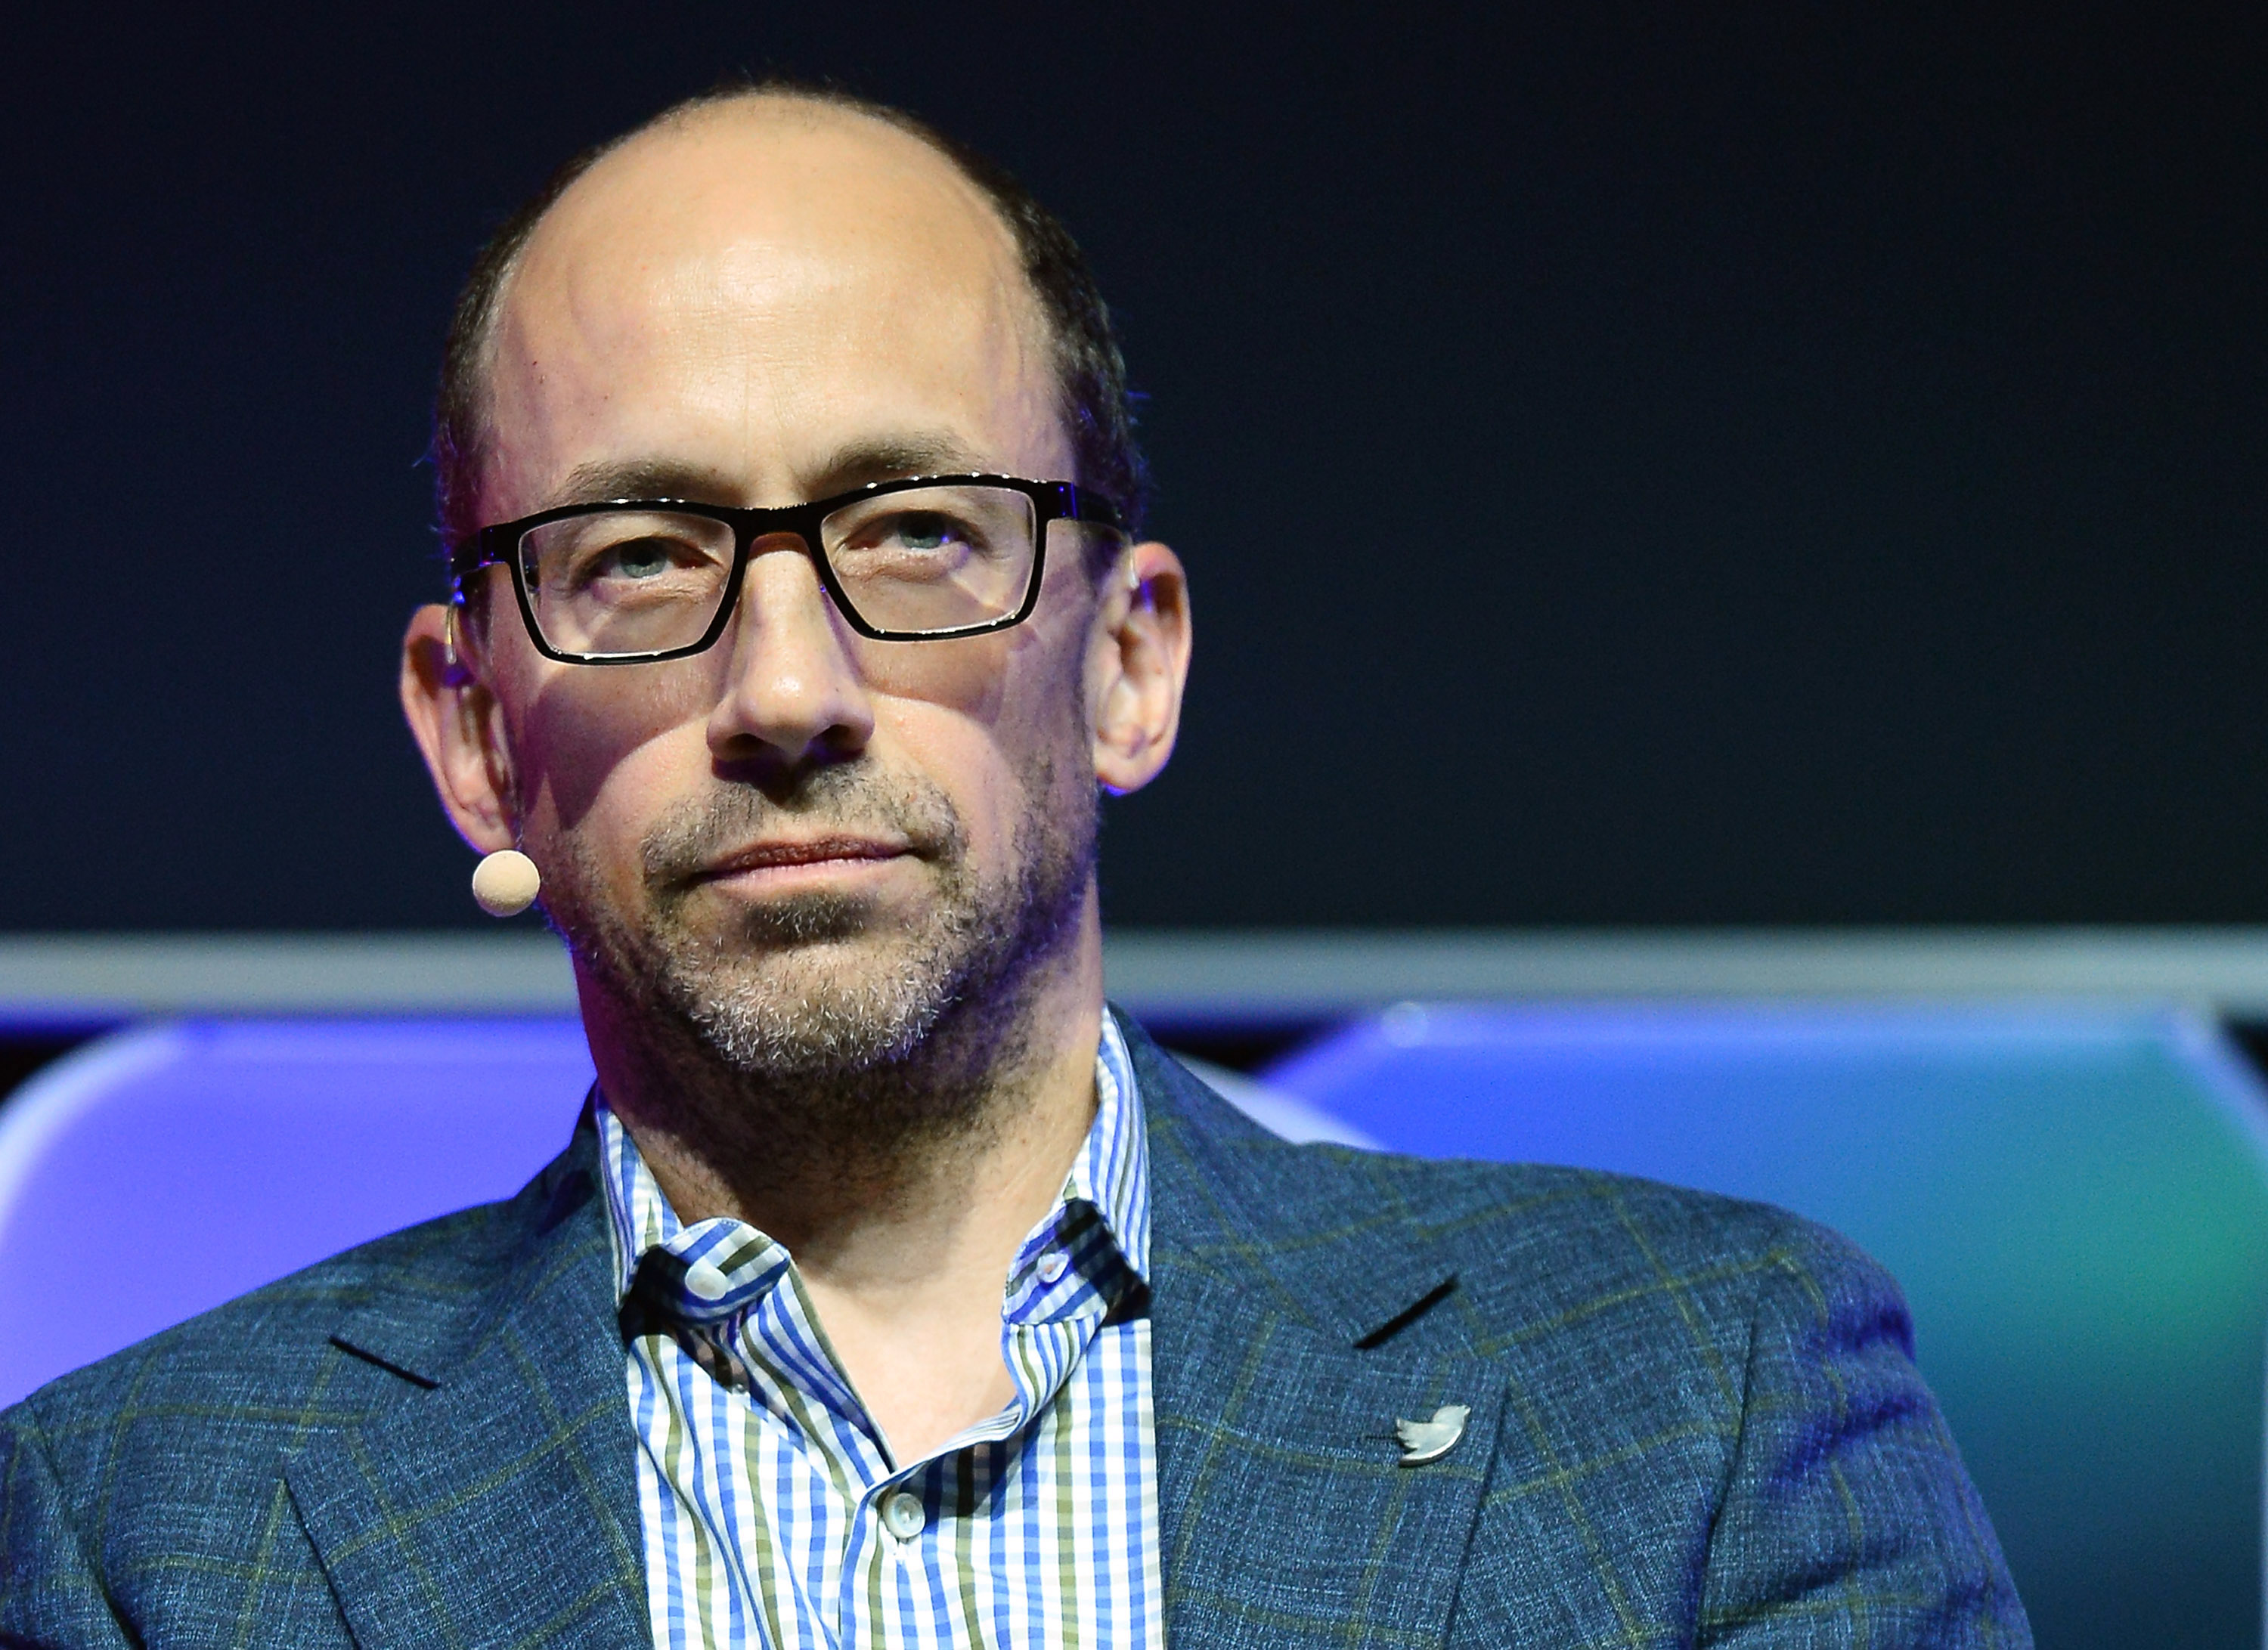 Twitter CEO Dick Costolo speaks during the Brand Matters keynote address at the 2014 International CES at The Las Vegas Hotel & Casino on January 8, 2014 in Las Vegas, Nevada.